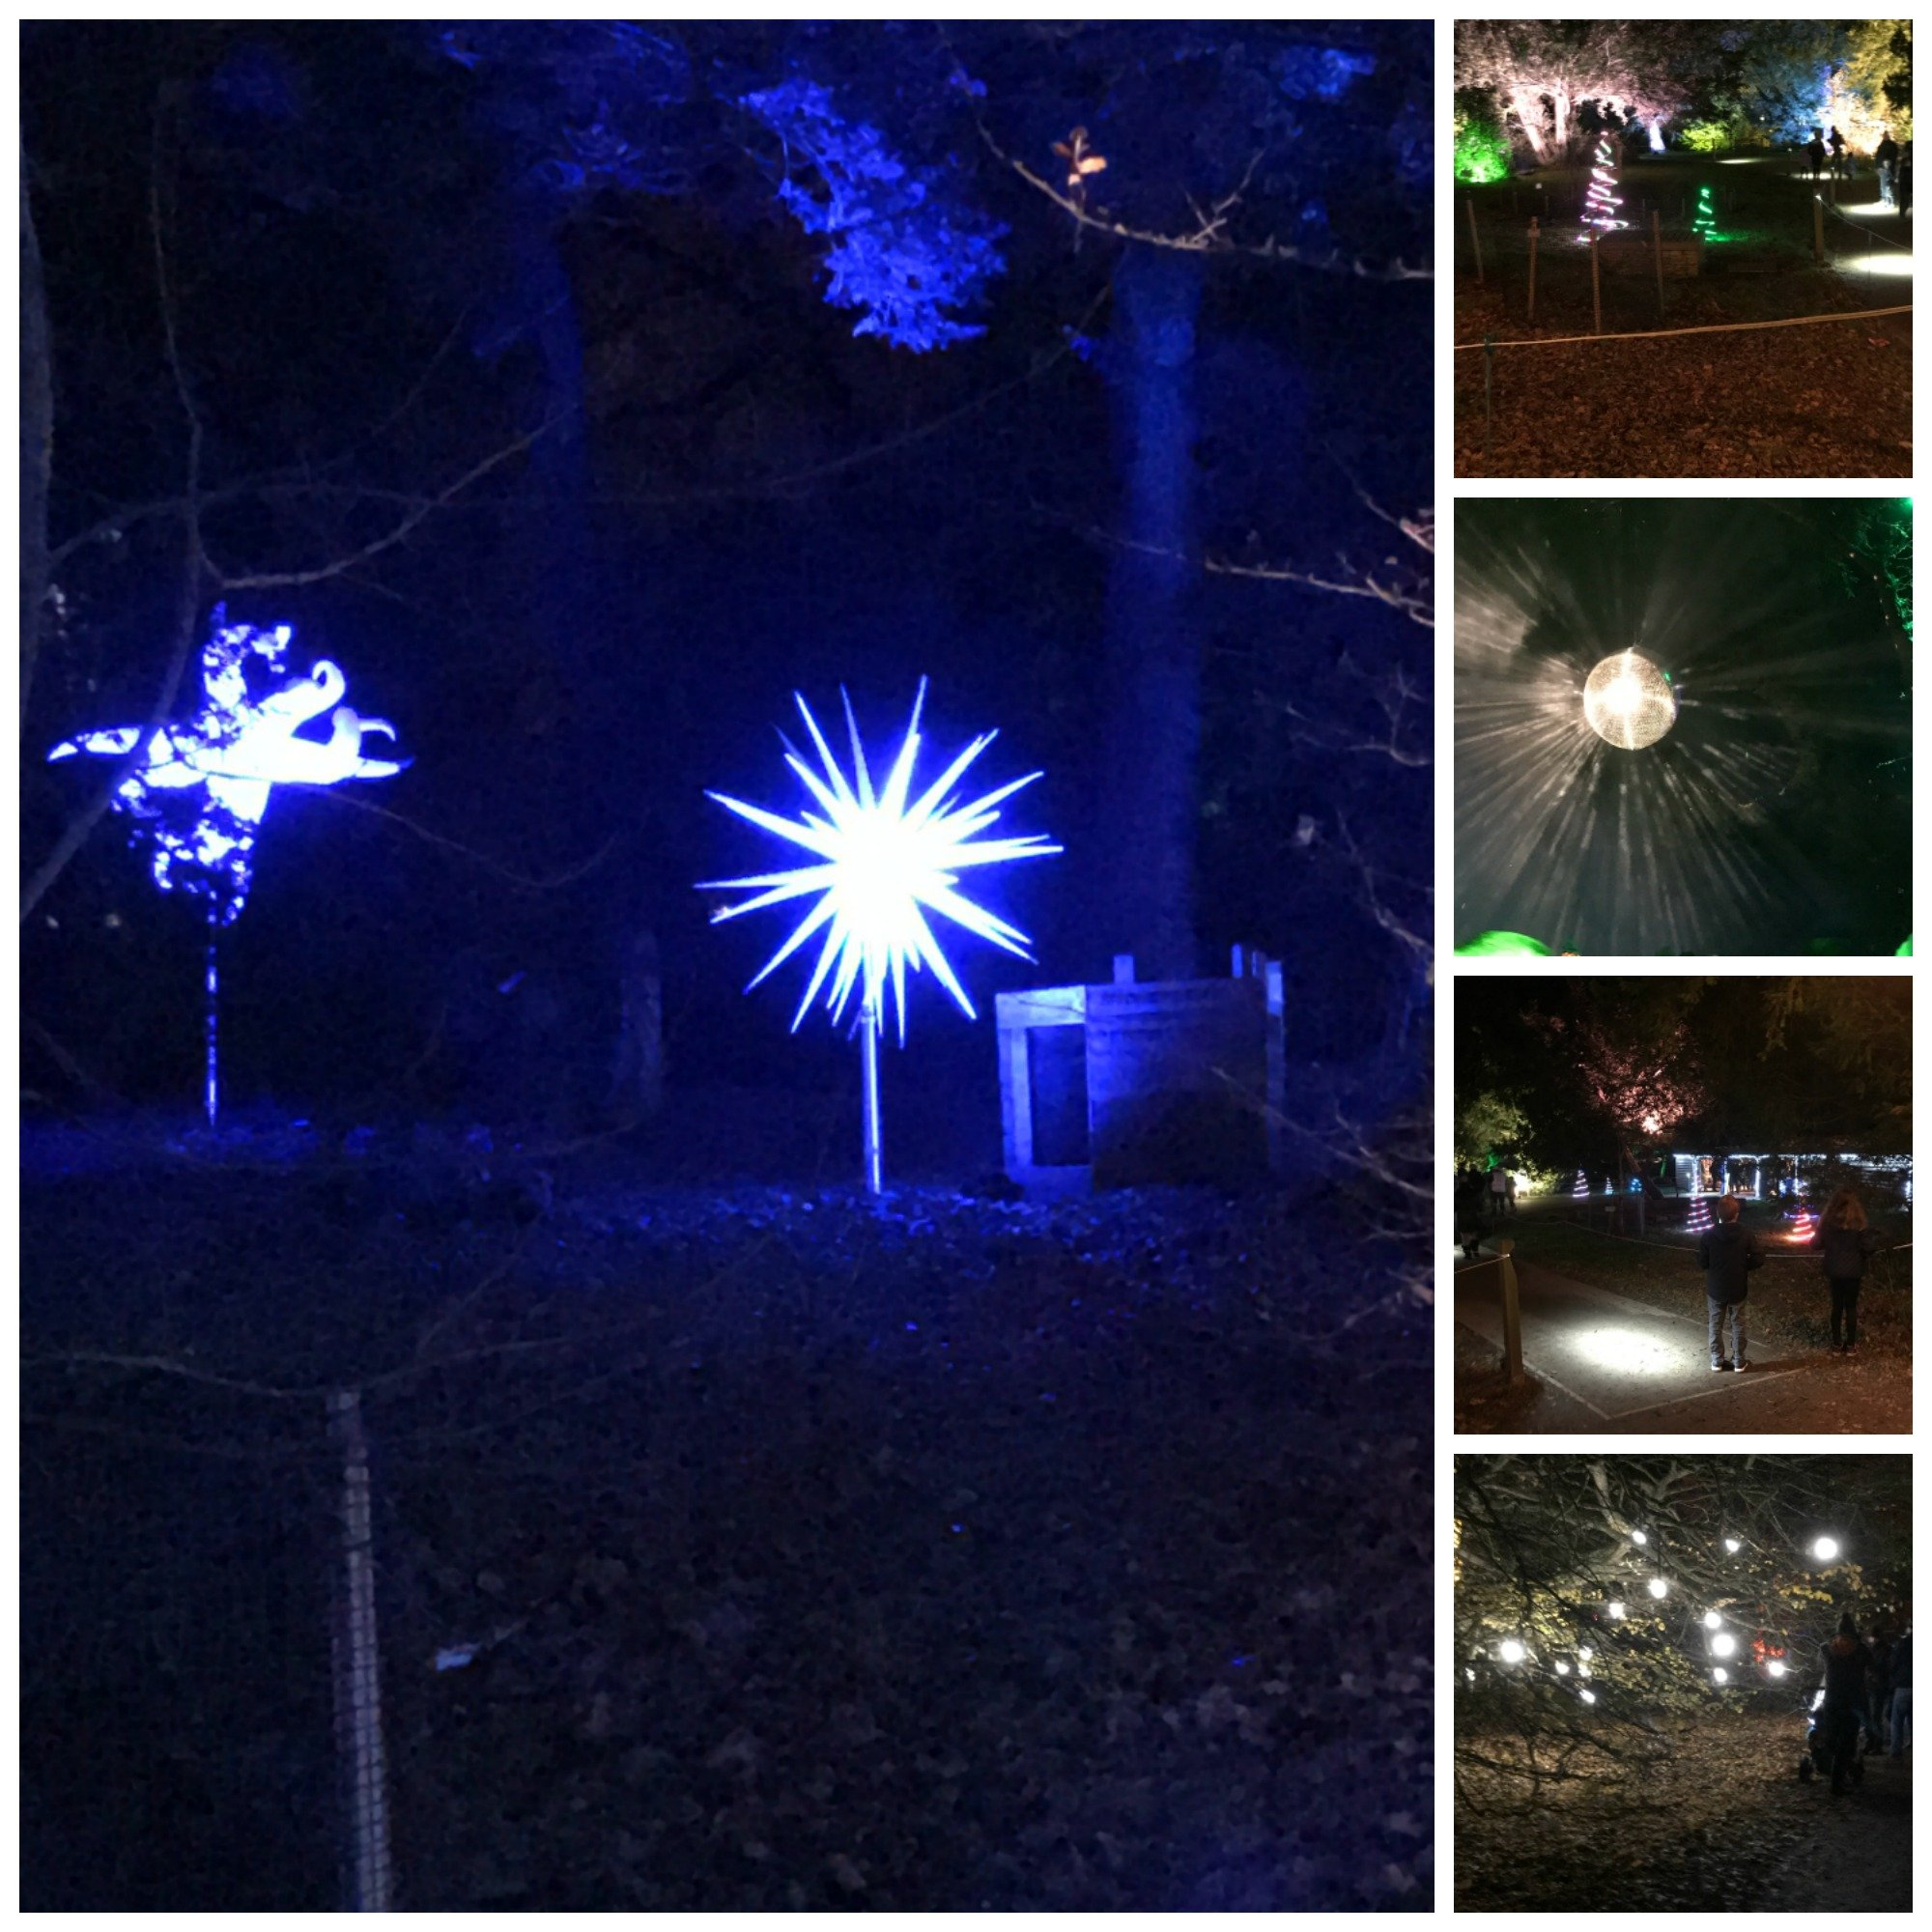 Impressive light displays at Westonbirt Arboretum Enchanted Christmas Trail 2017